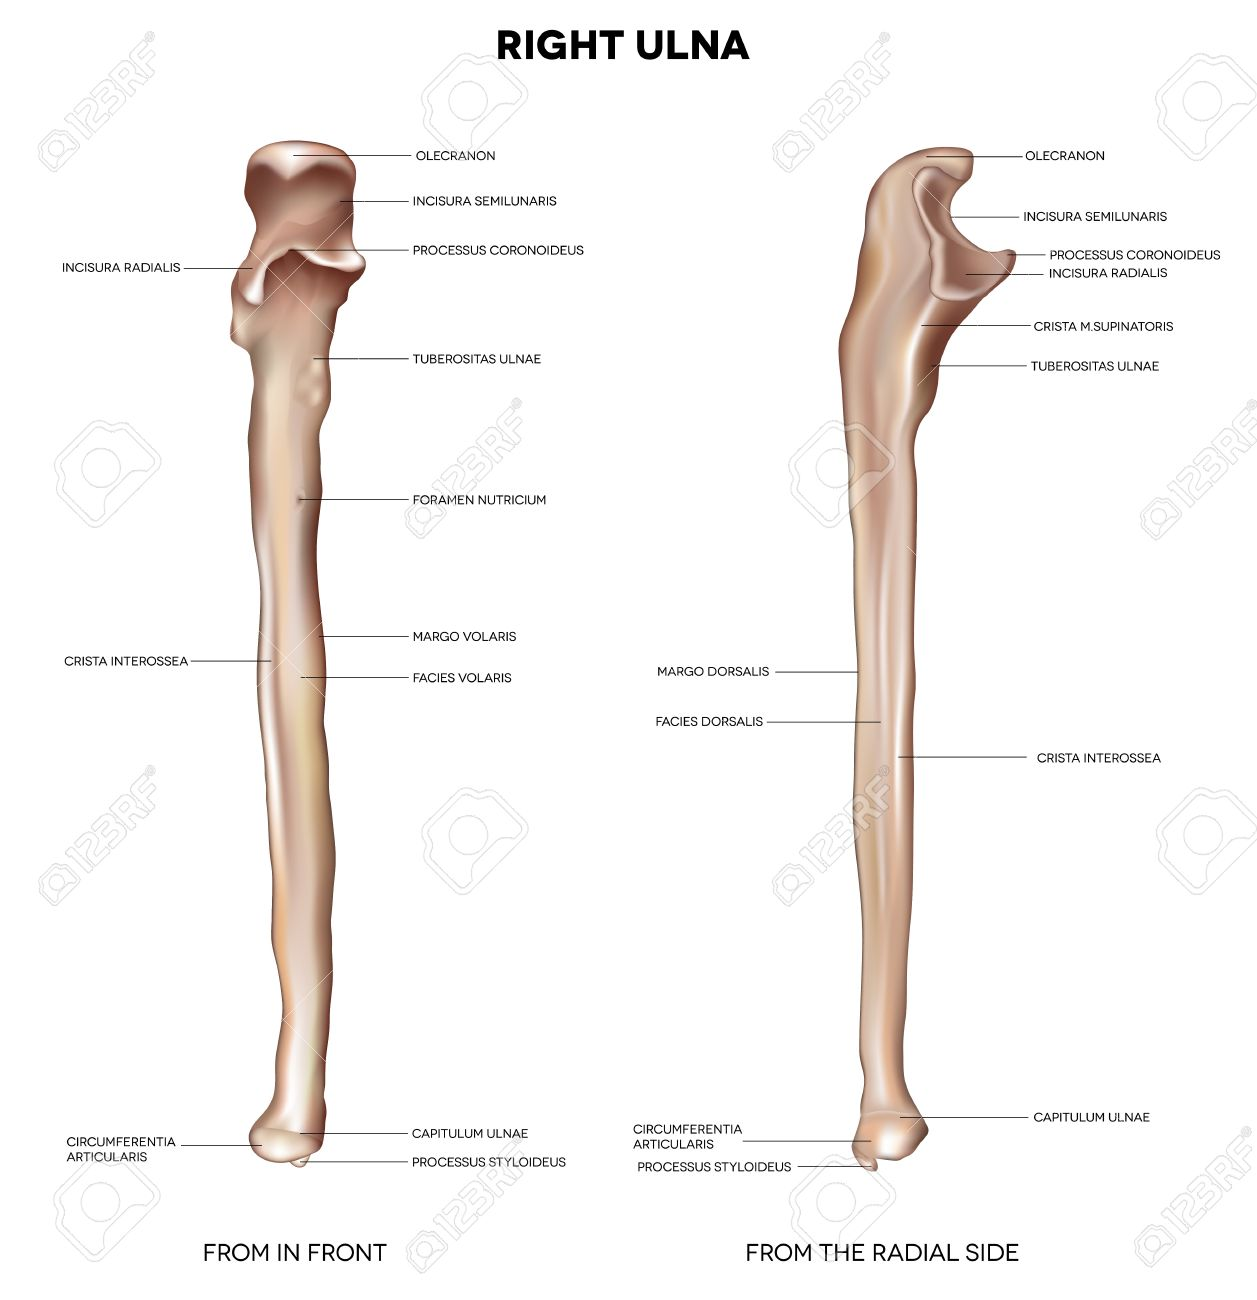 Ulna Detailed medical illustration from in front and the radial side Latin medical terms Isolated on a white background - 19490581